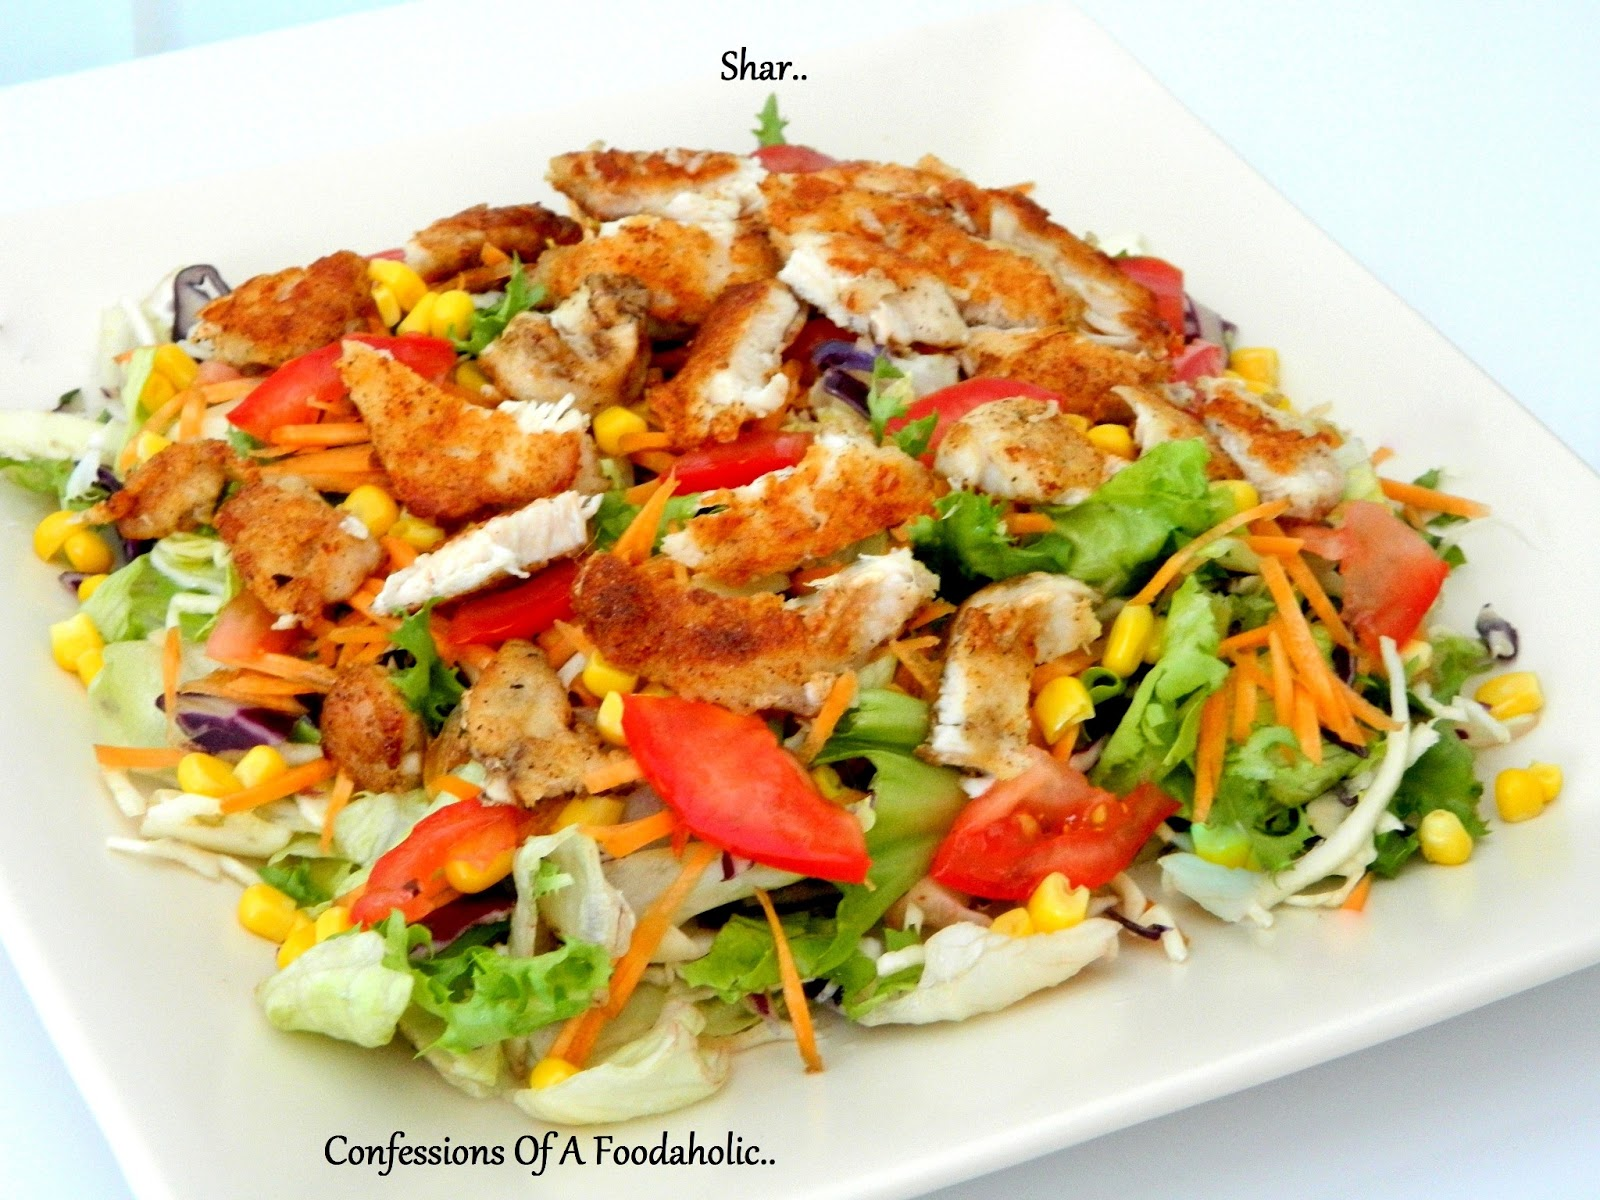 ... Of A Foodaholic: Crispy chicken over bed of crunchy salad